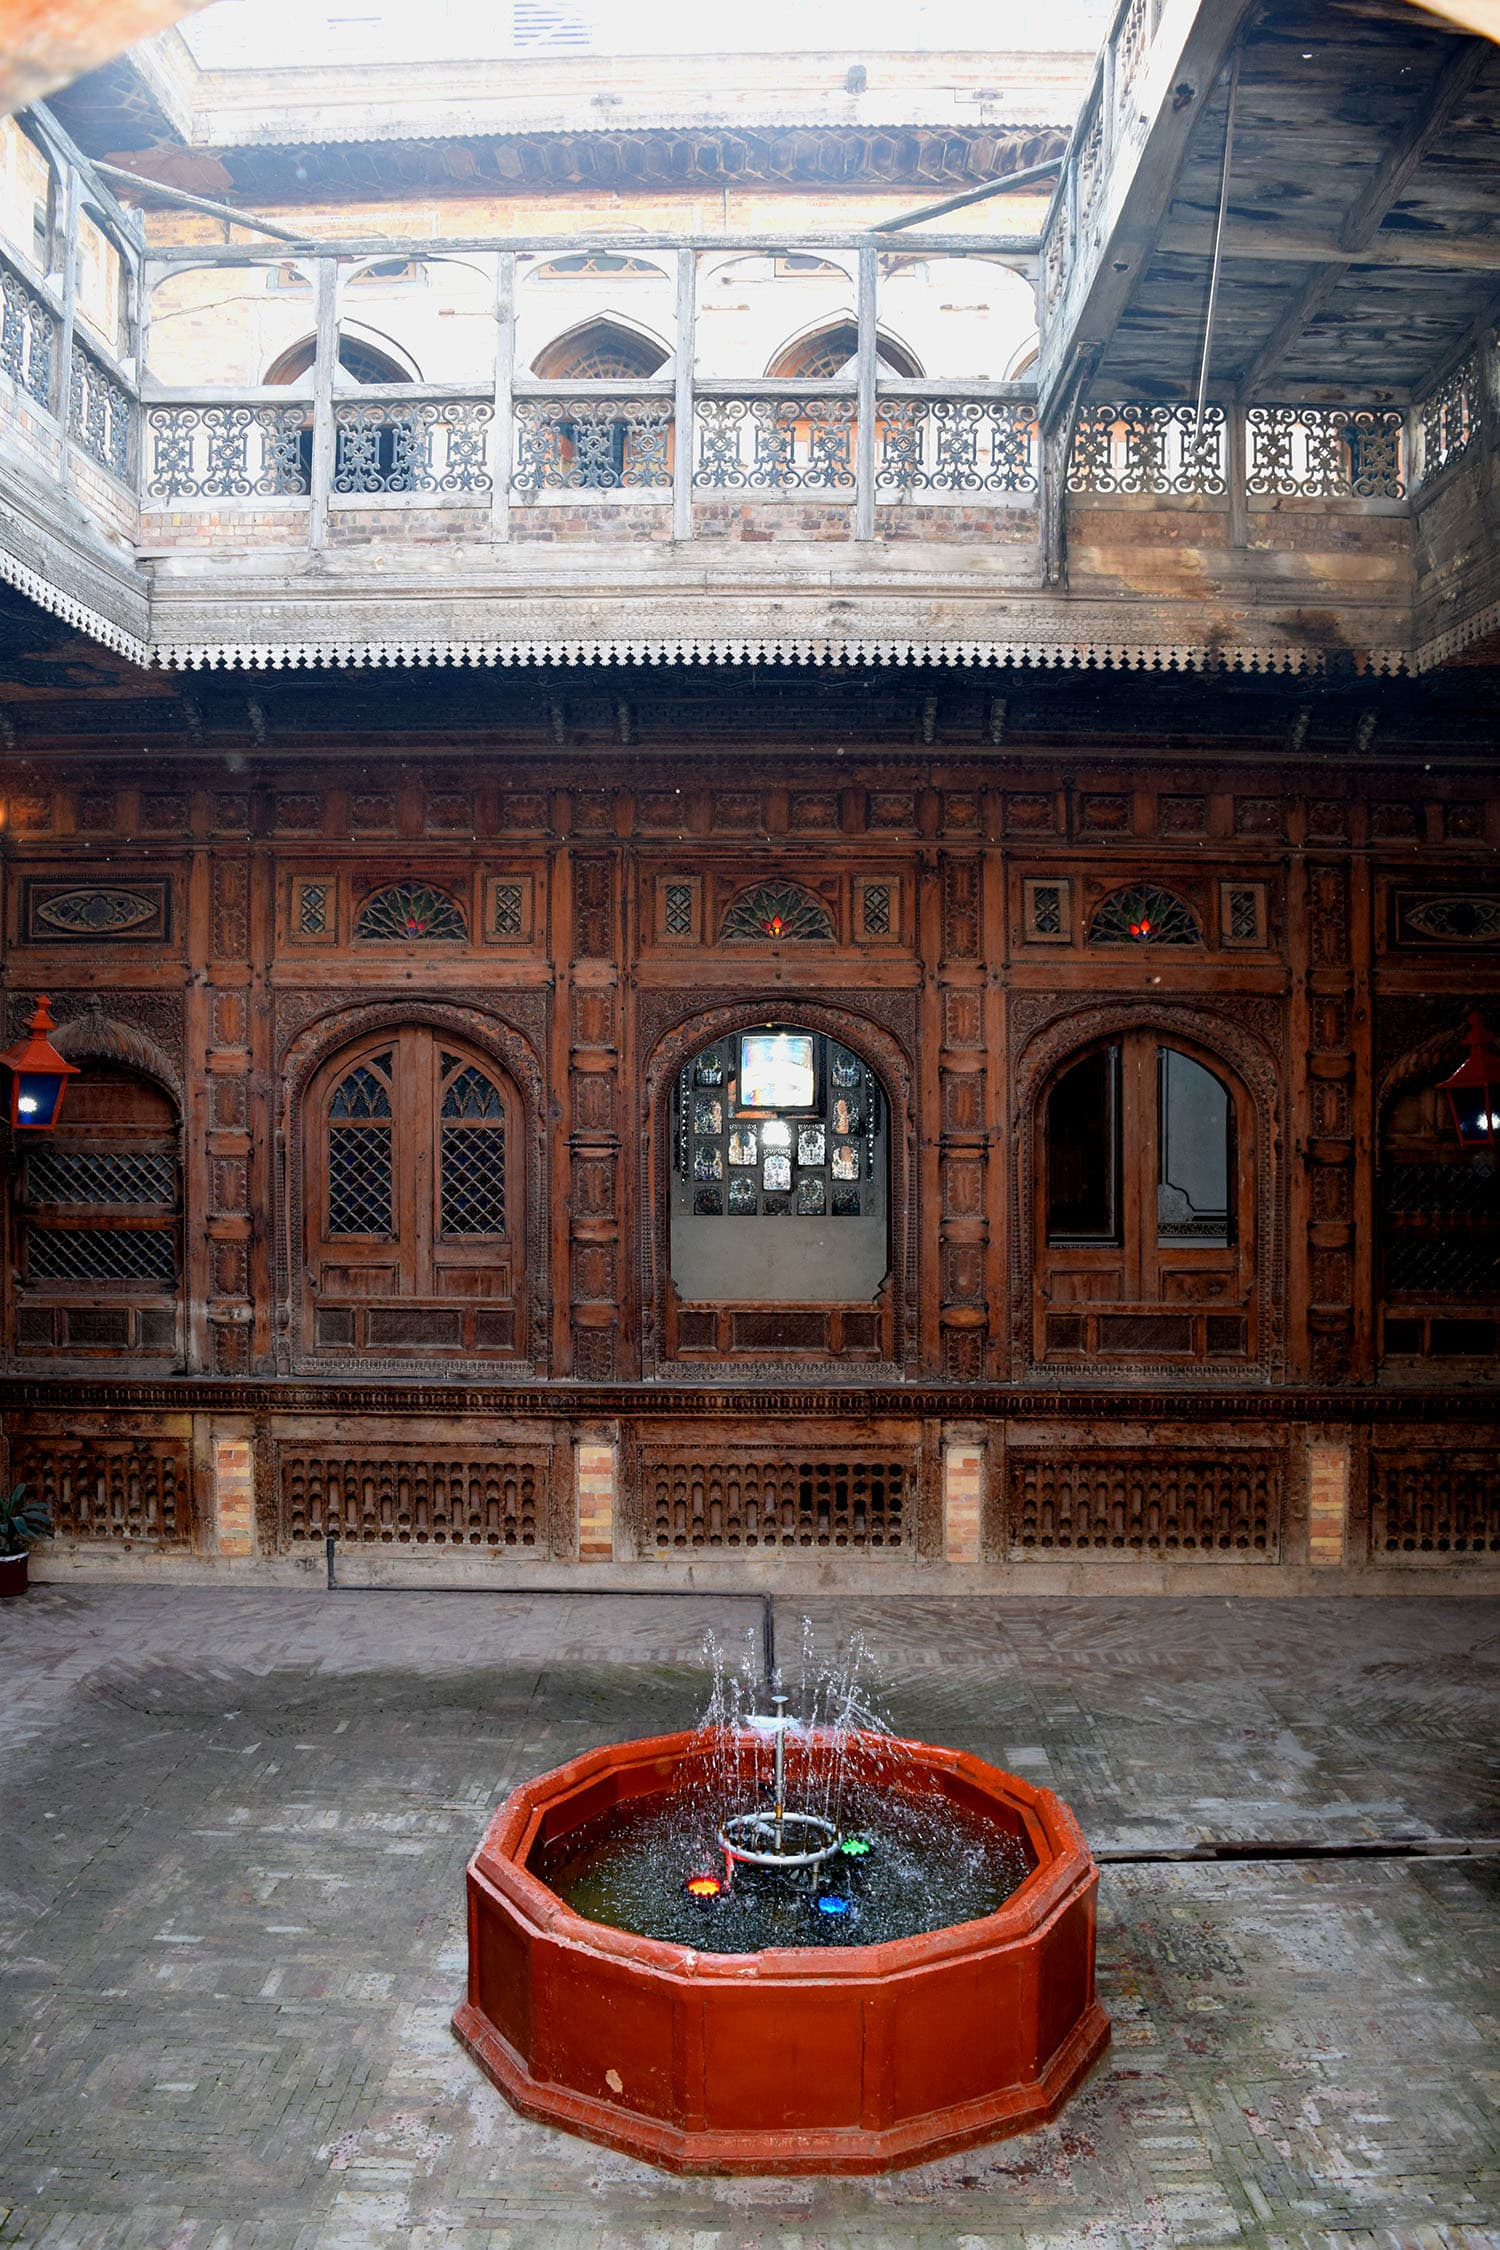 The courtyard of Sethi Haveli.